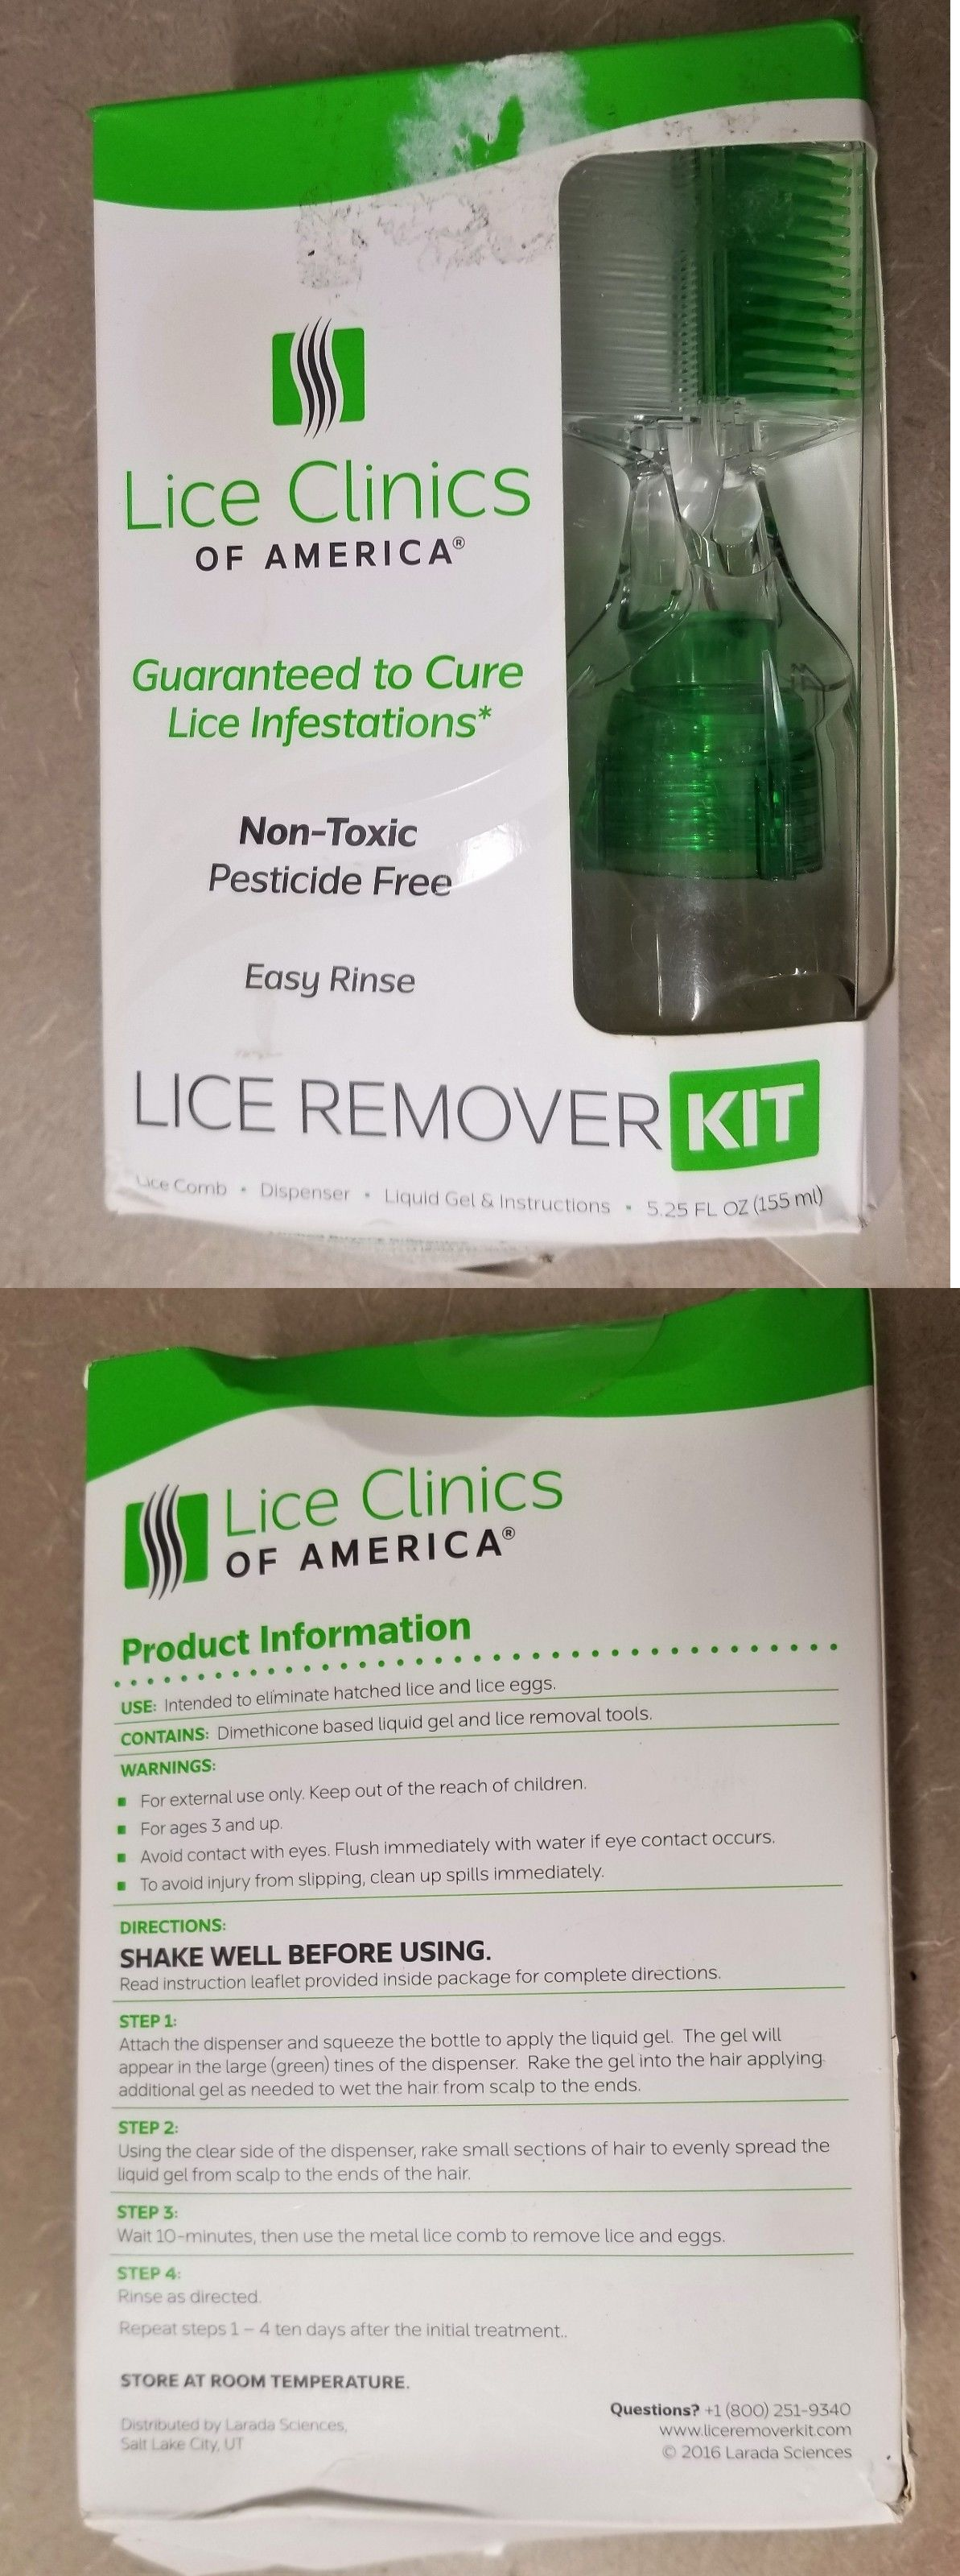 NEW Lice Clinics Of America Live Remover Kit With Comb Lice Remover